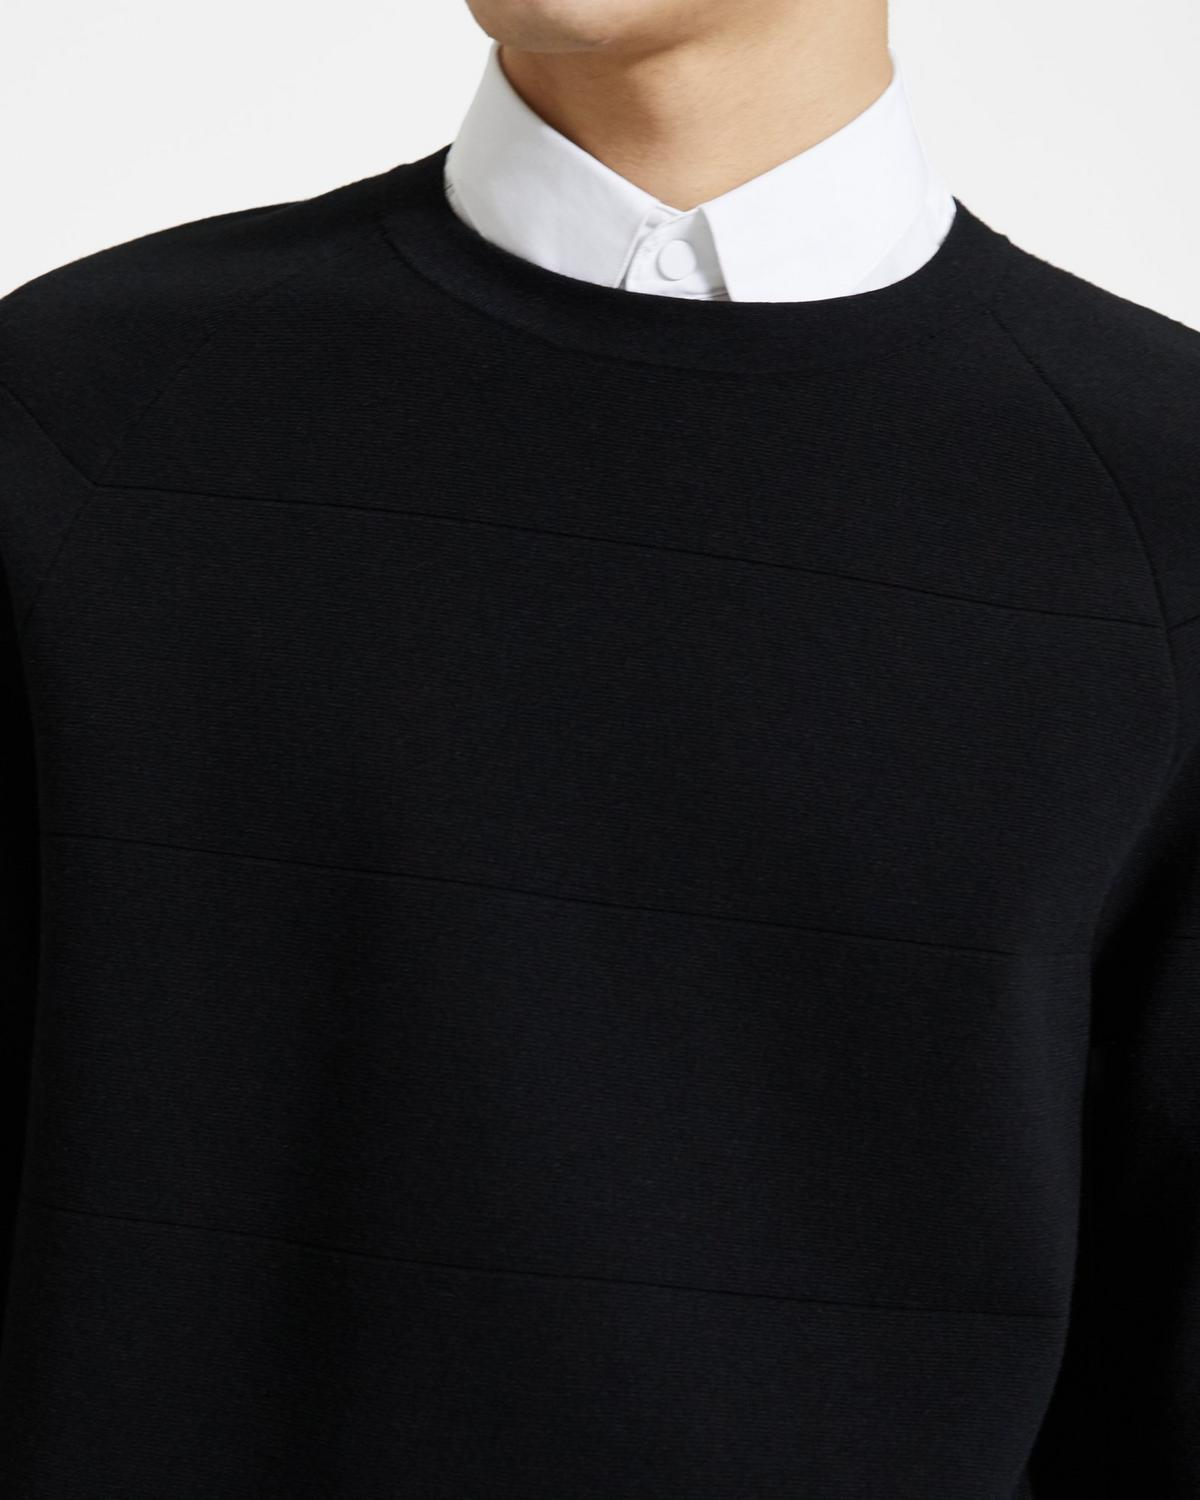 Engineered Crewneck Sweater